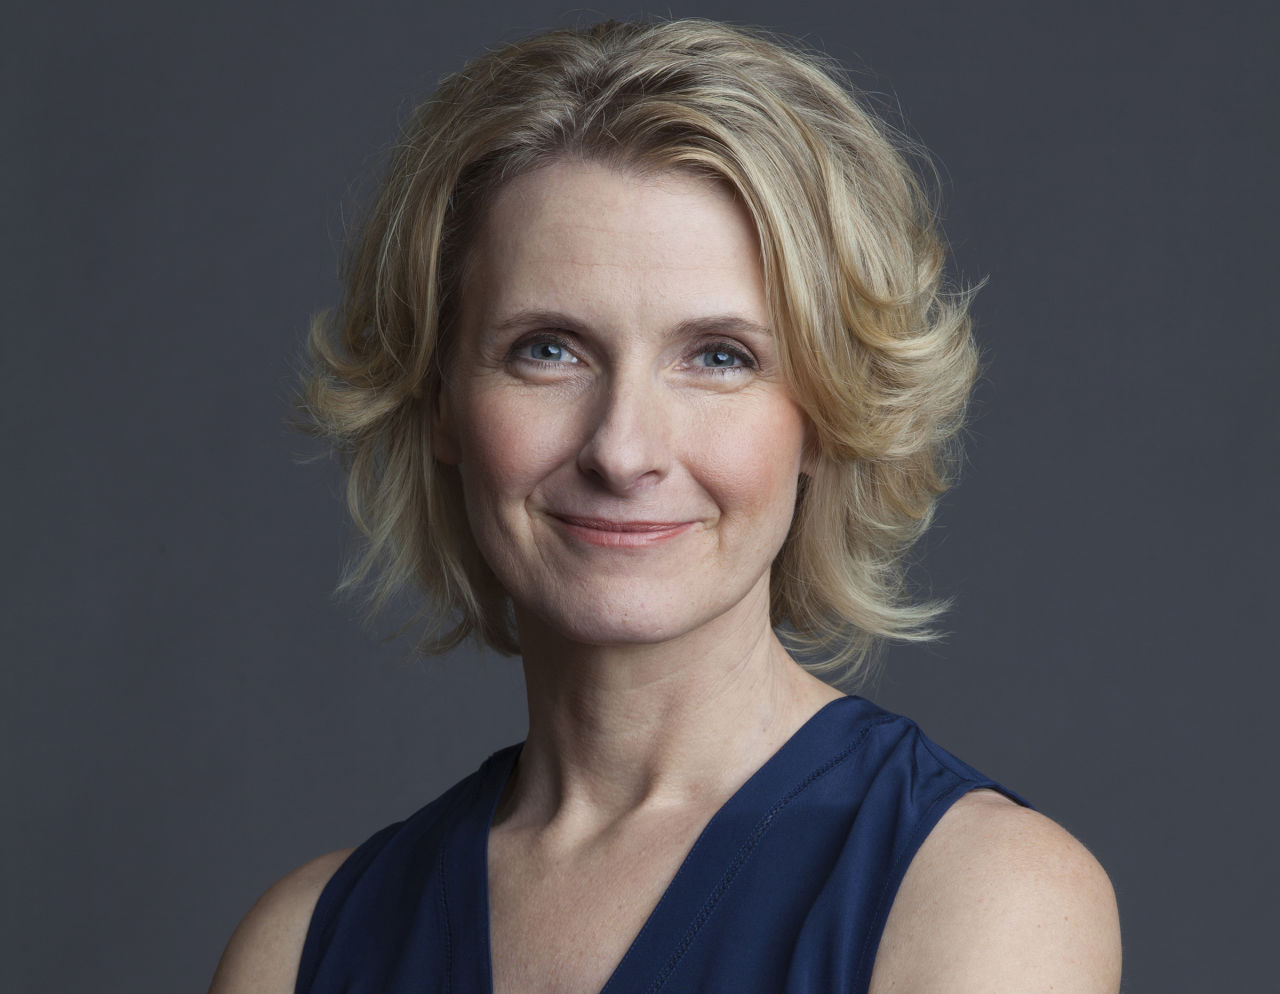 Elizabeth Gilbert On Unlocking Creativity, Ideas As Viruses at http://www.wbur.org/hereandnow/2015/09/23/elizabeth-gilbert